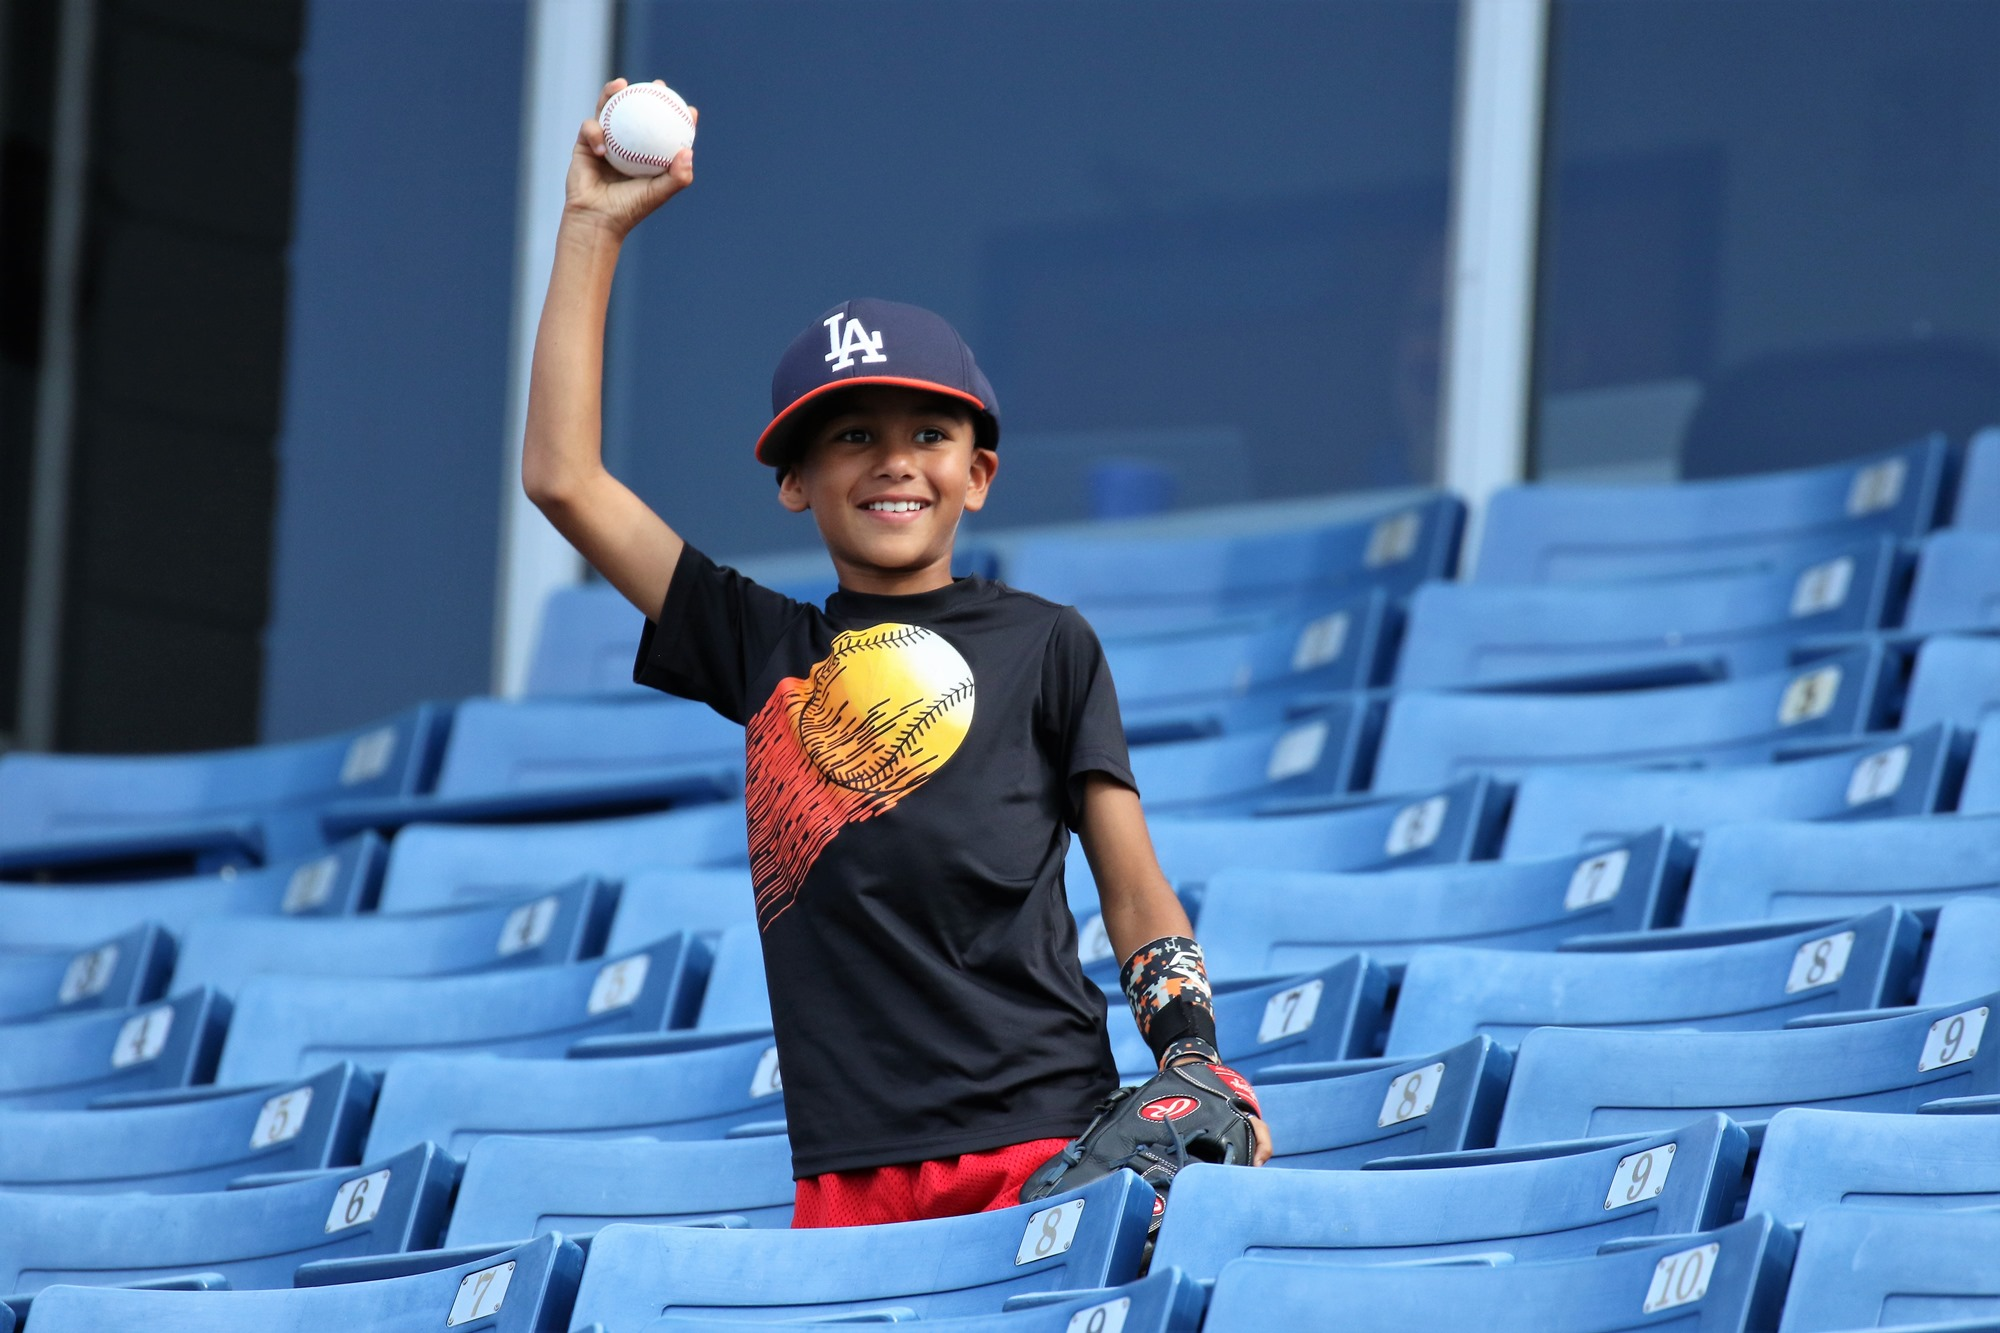 The young Venezuela fan goes home with a souvenir ball